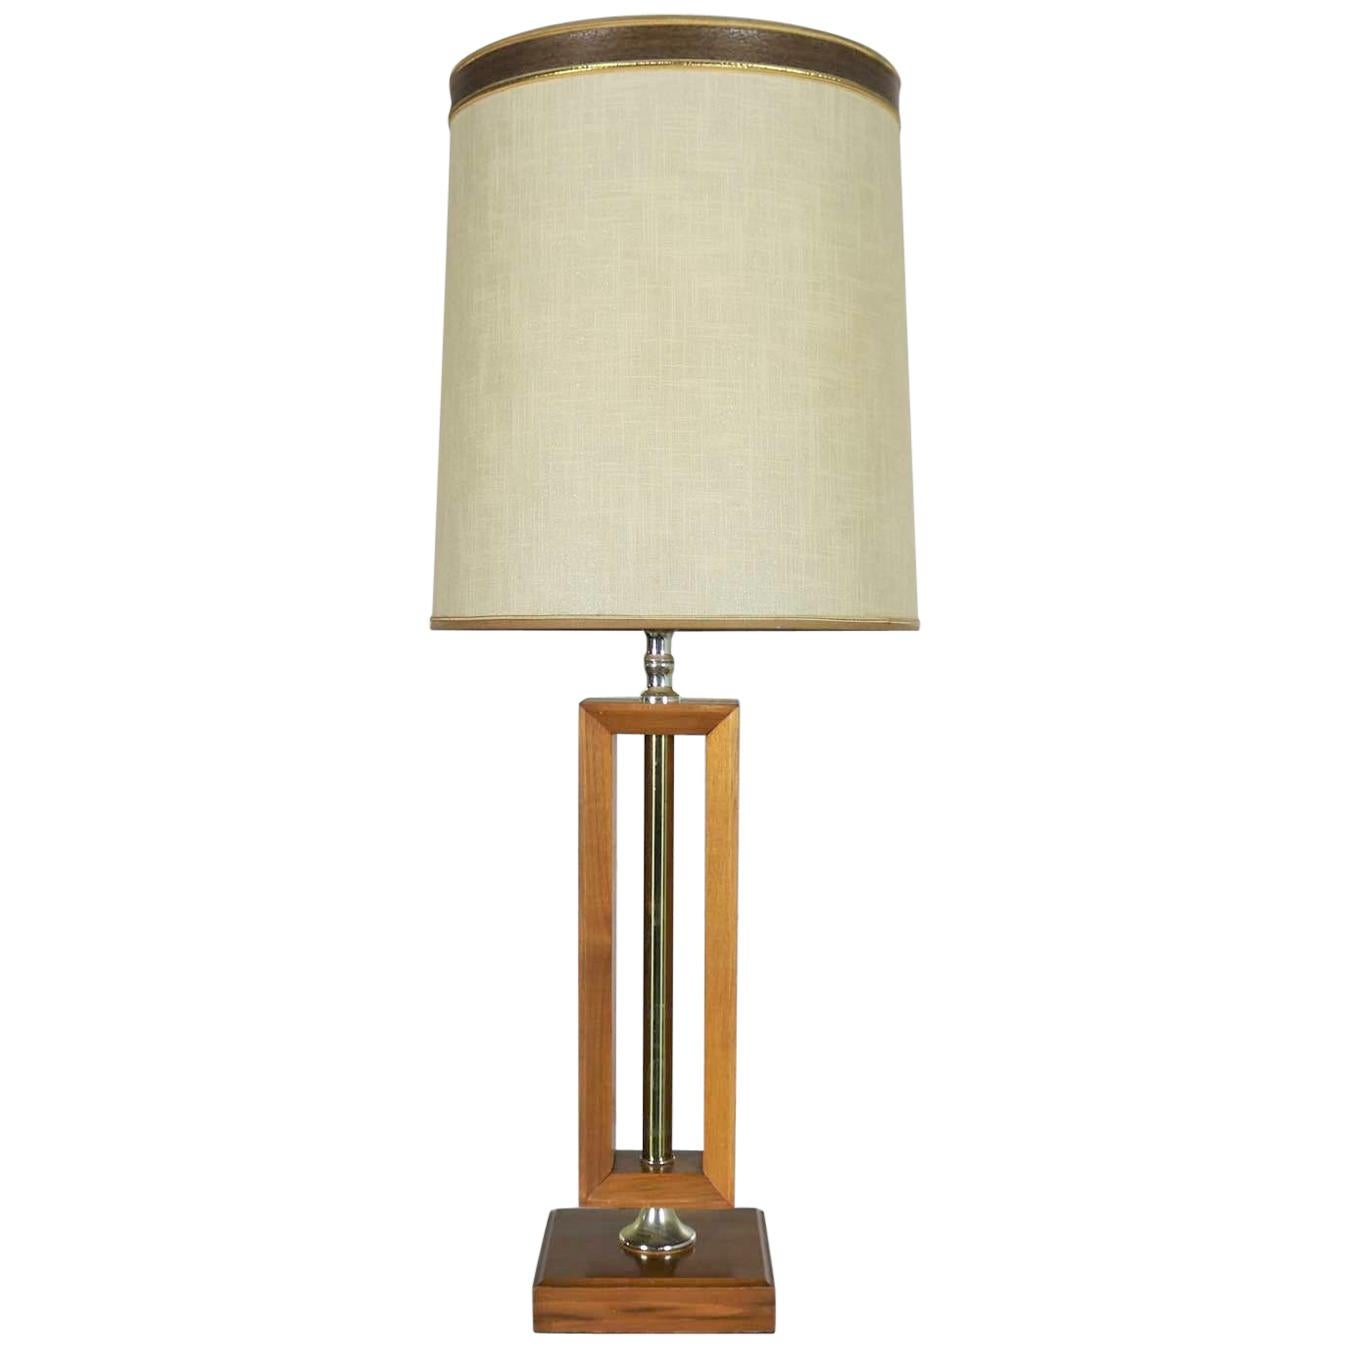 Small Scale Mid-Century Modern Walnut and Brass Lamp Style of Laurel Lamp Mfg